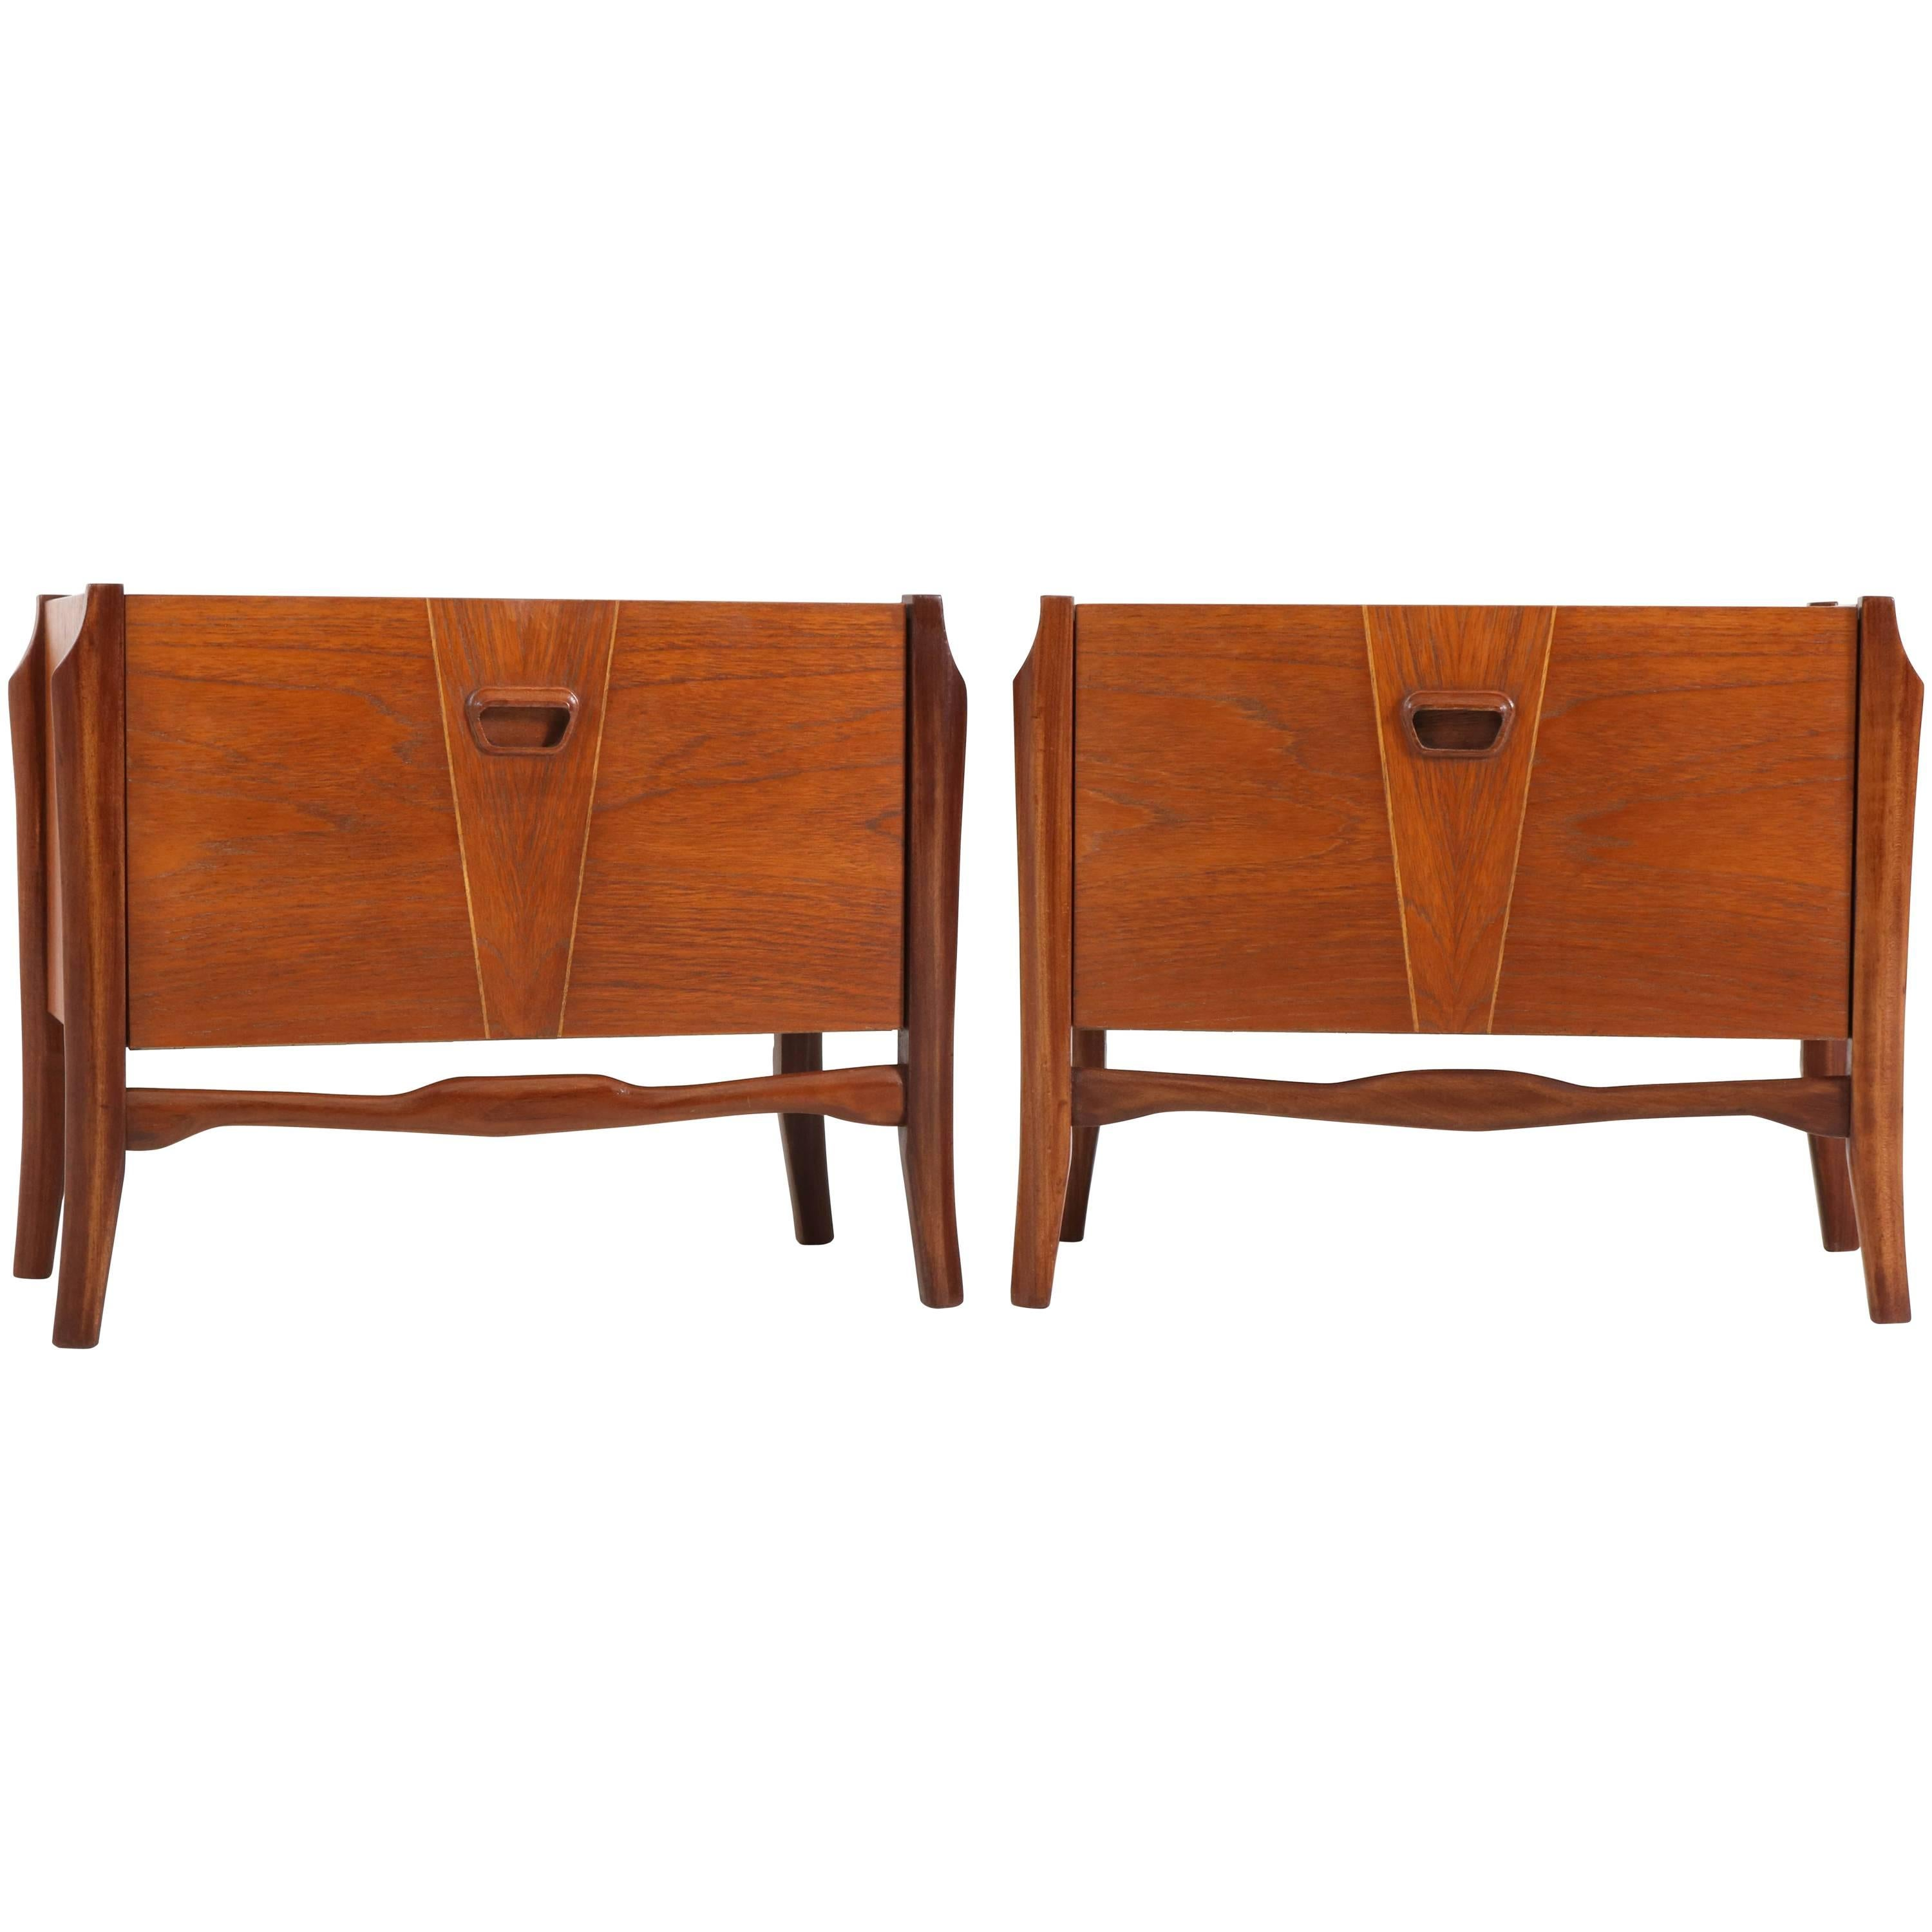 Pair Of Teak Dutch Mid Century Modern Bedside Tables Or Nightstands, 1960s  For Sale